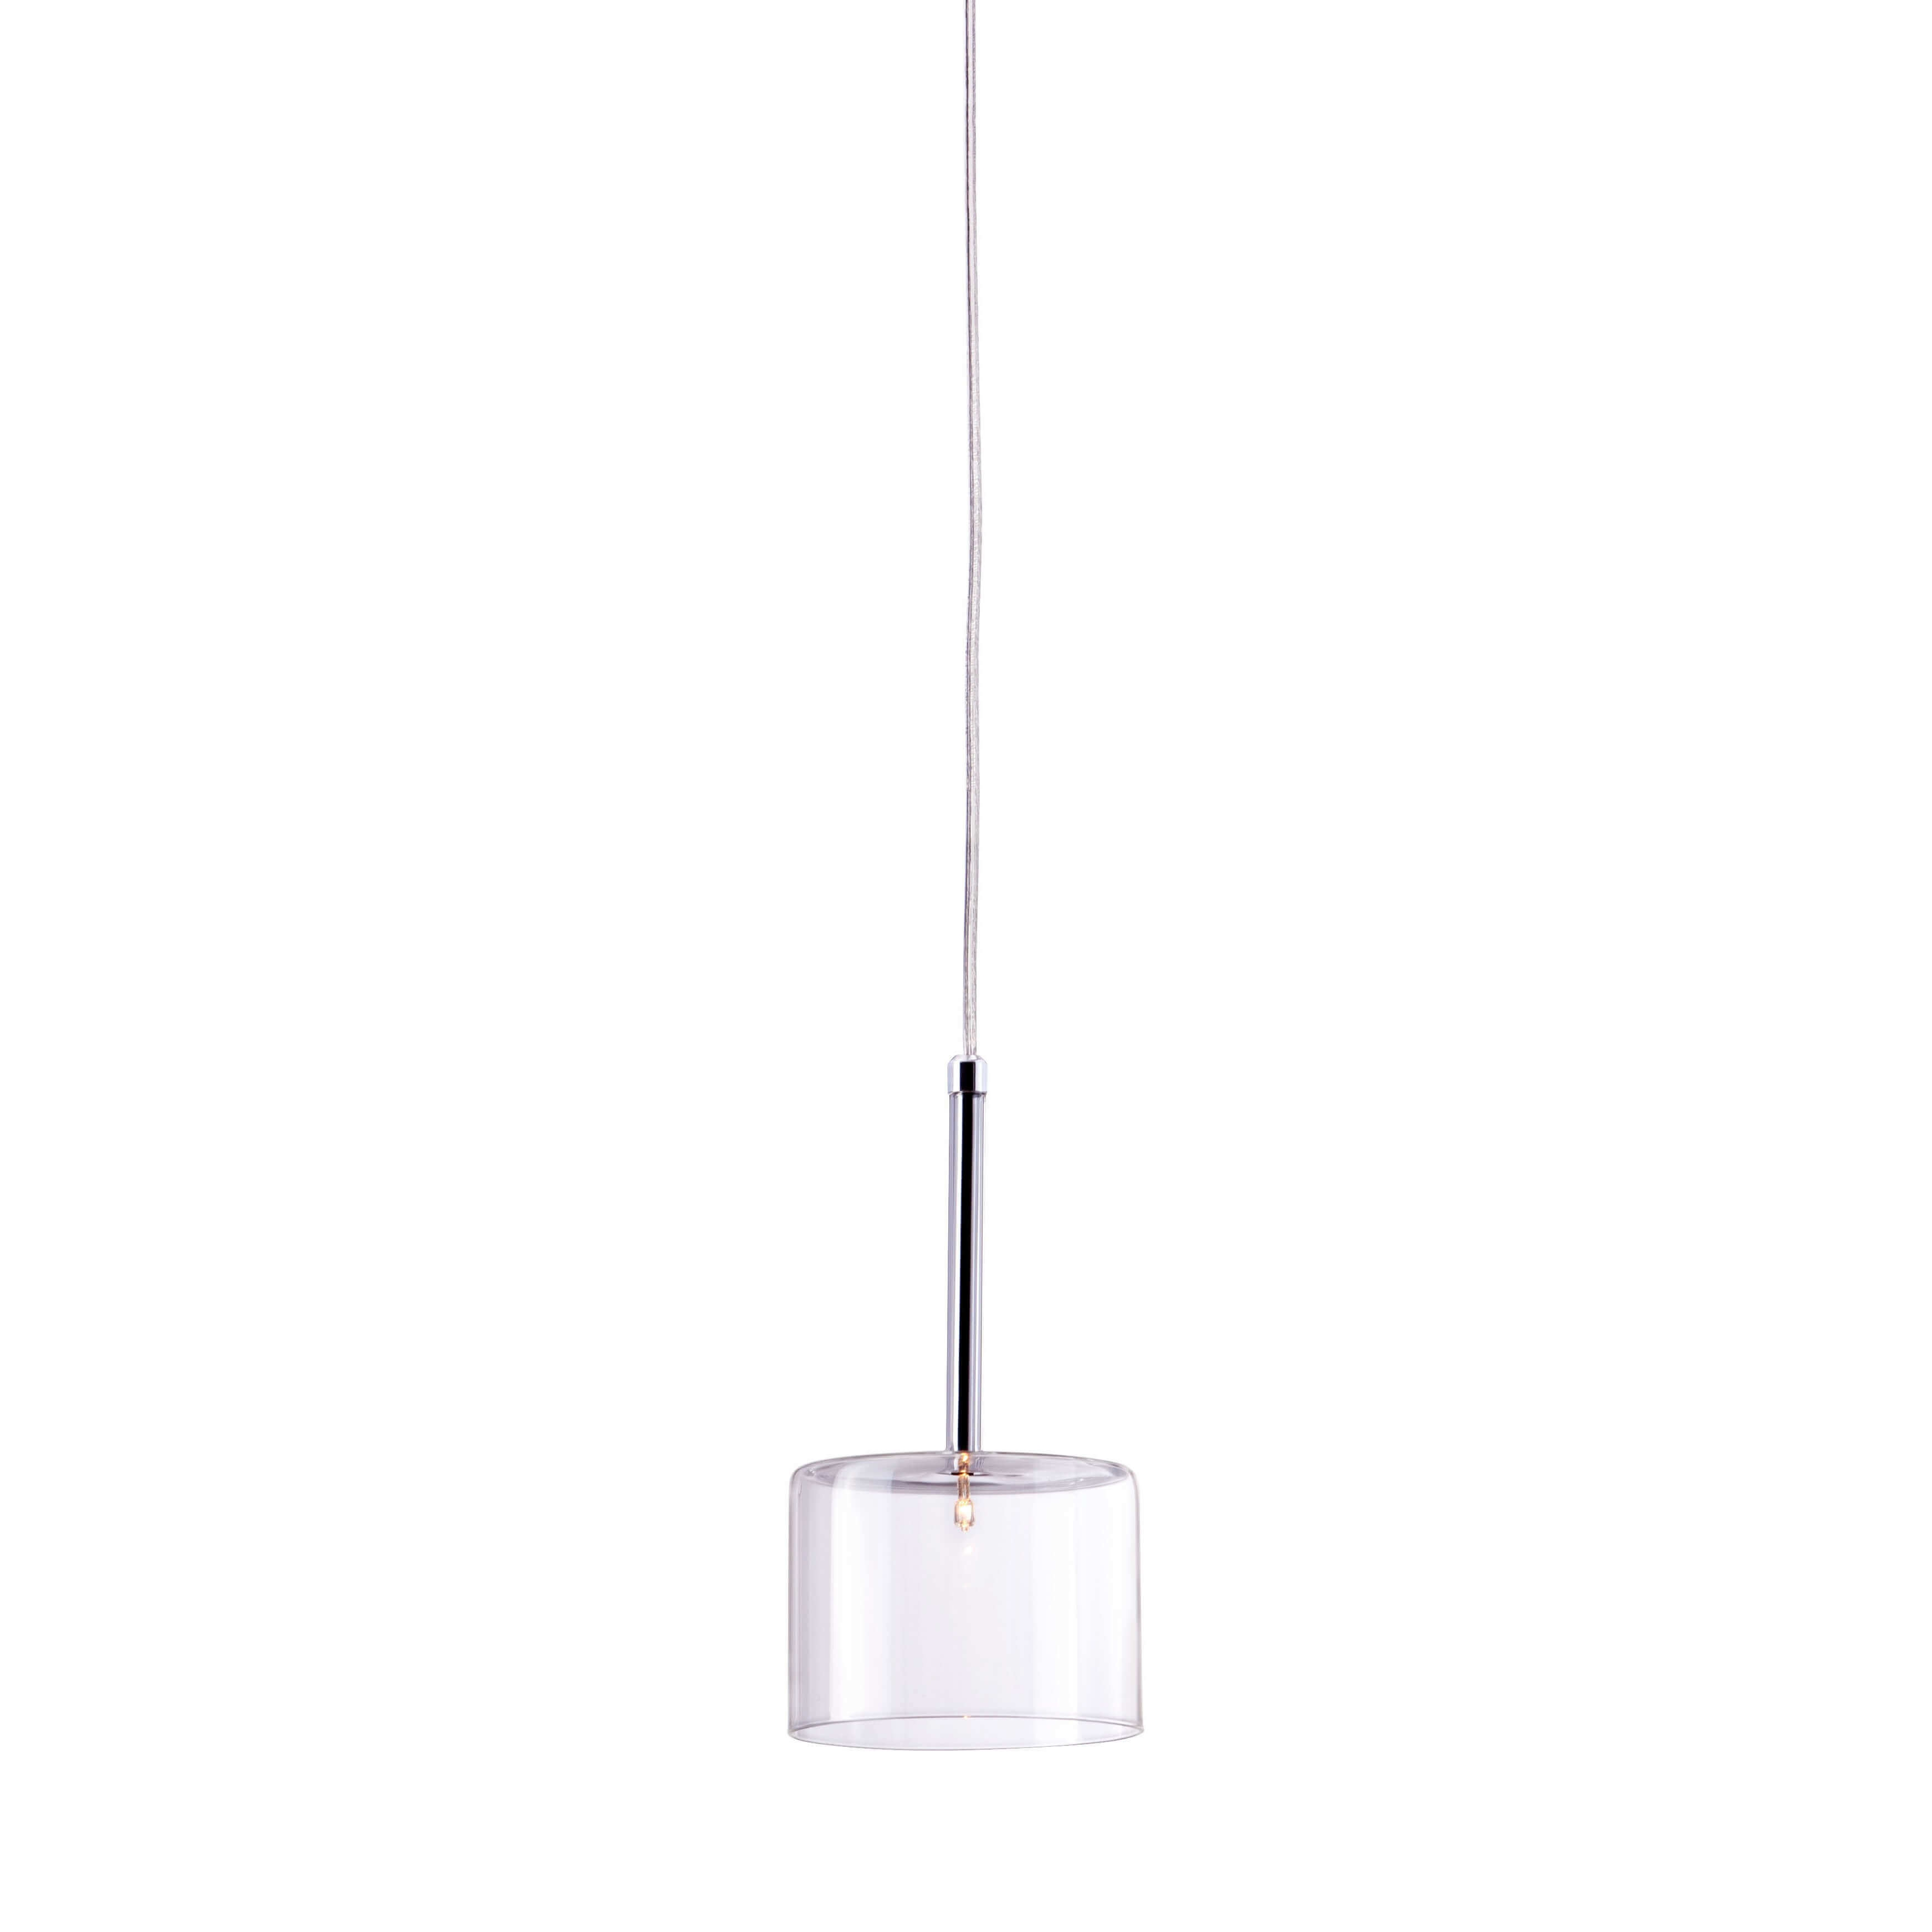 Glass pendant light front view